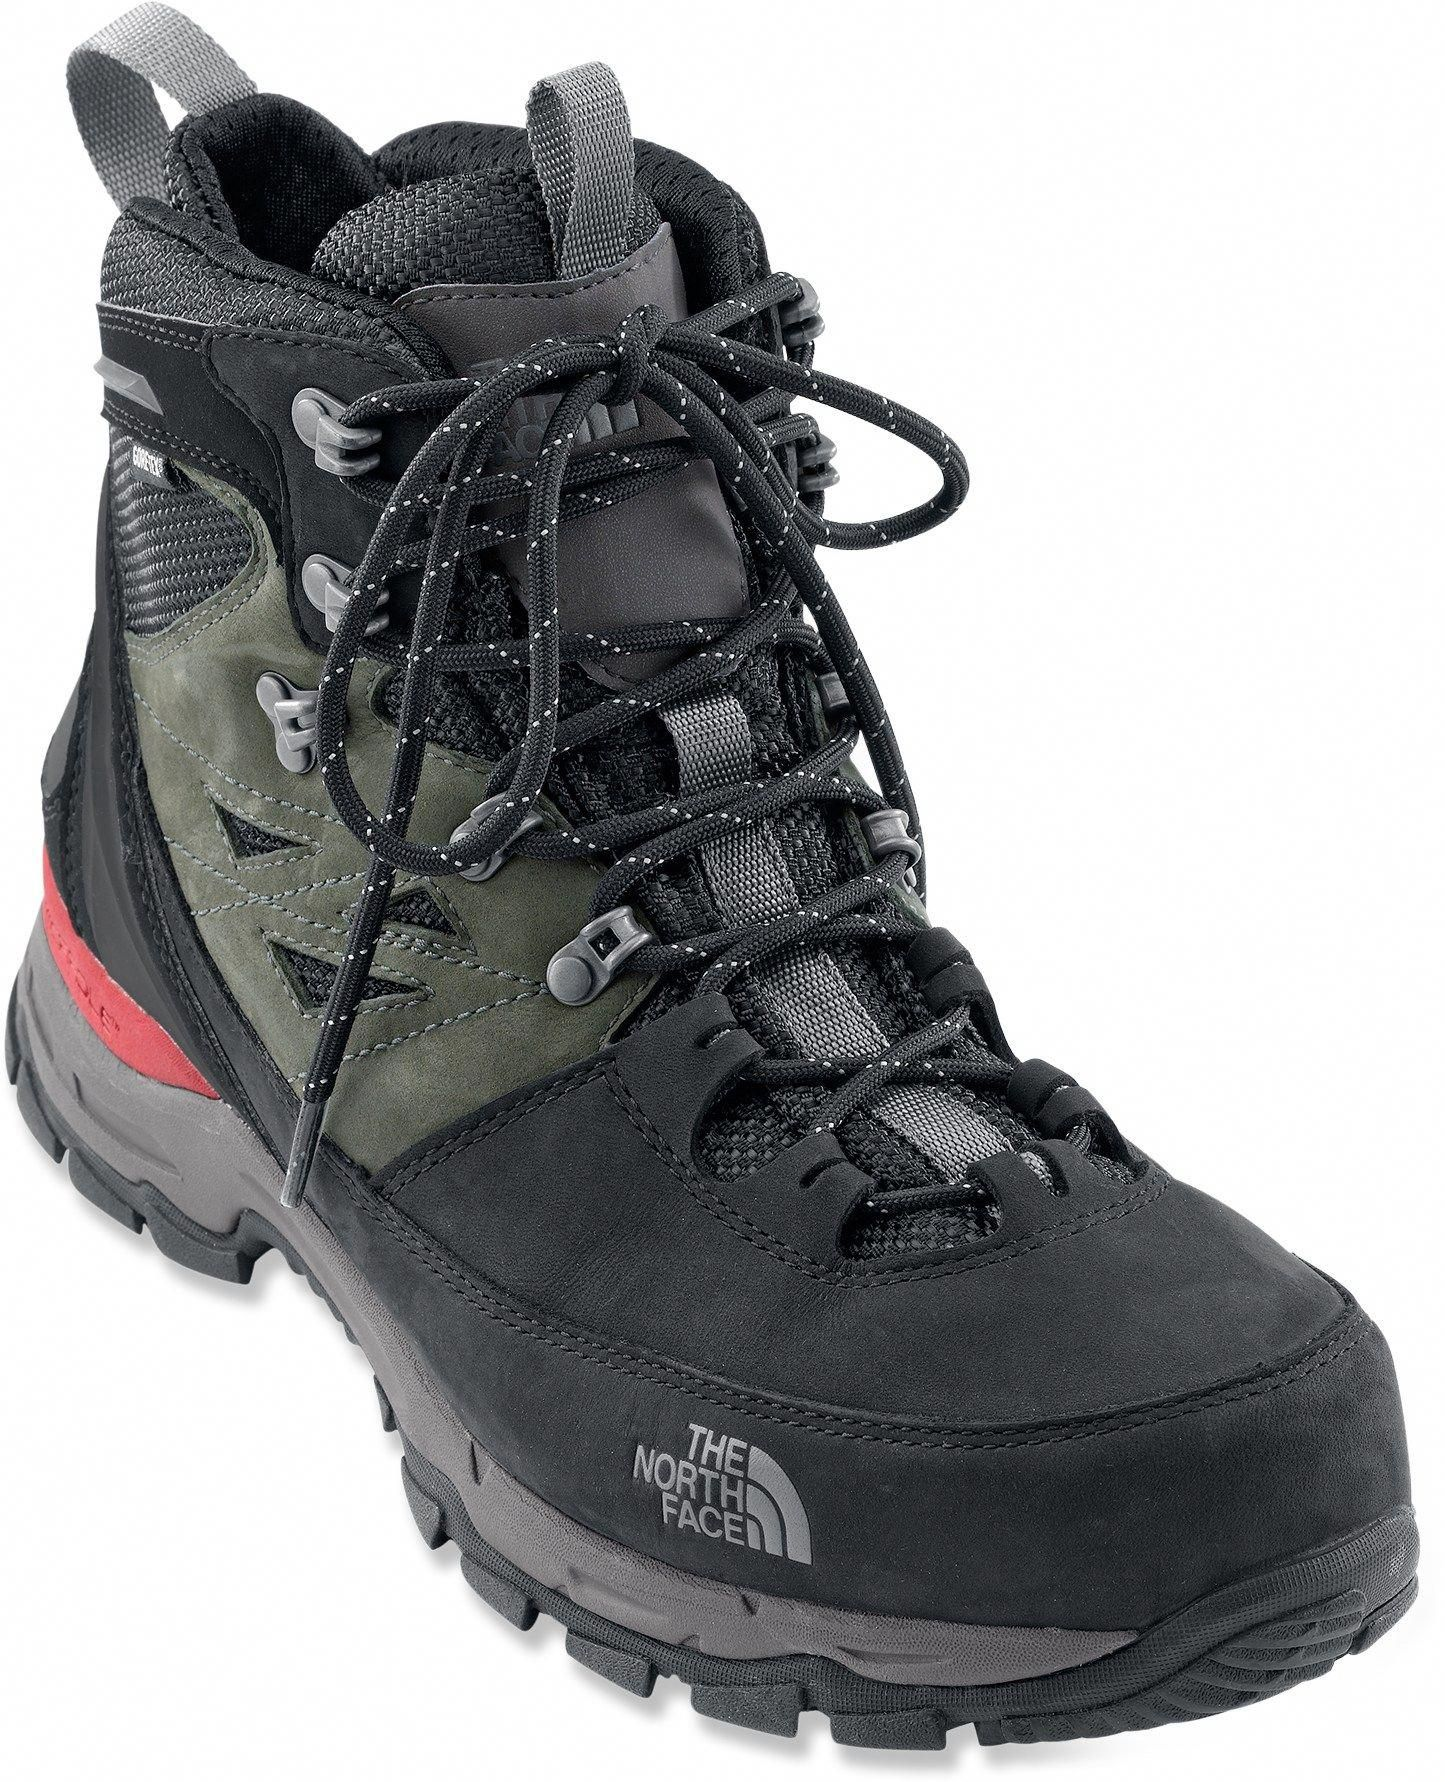 fc68e5d85 The North Face Verbera Hiker GTX Hiking Boots - Men s - Free Shipping at  REI.com